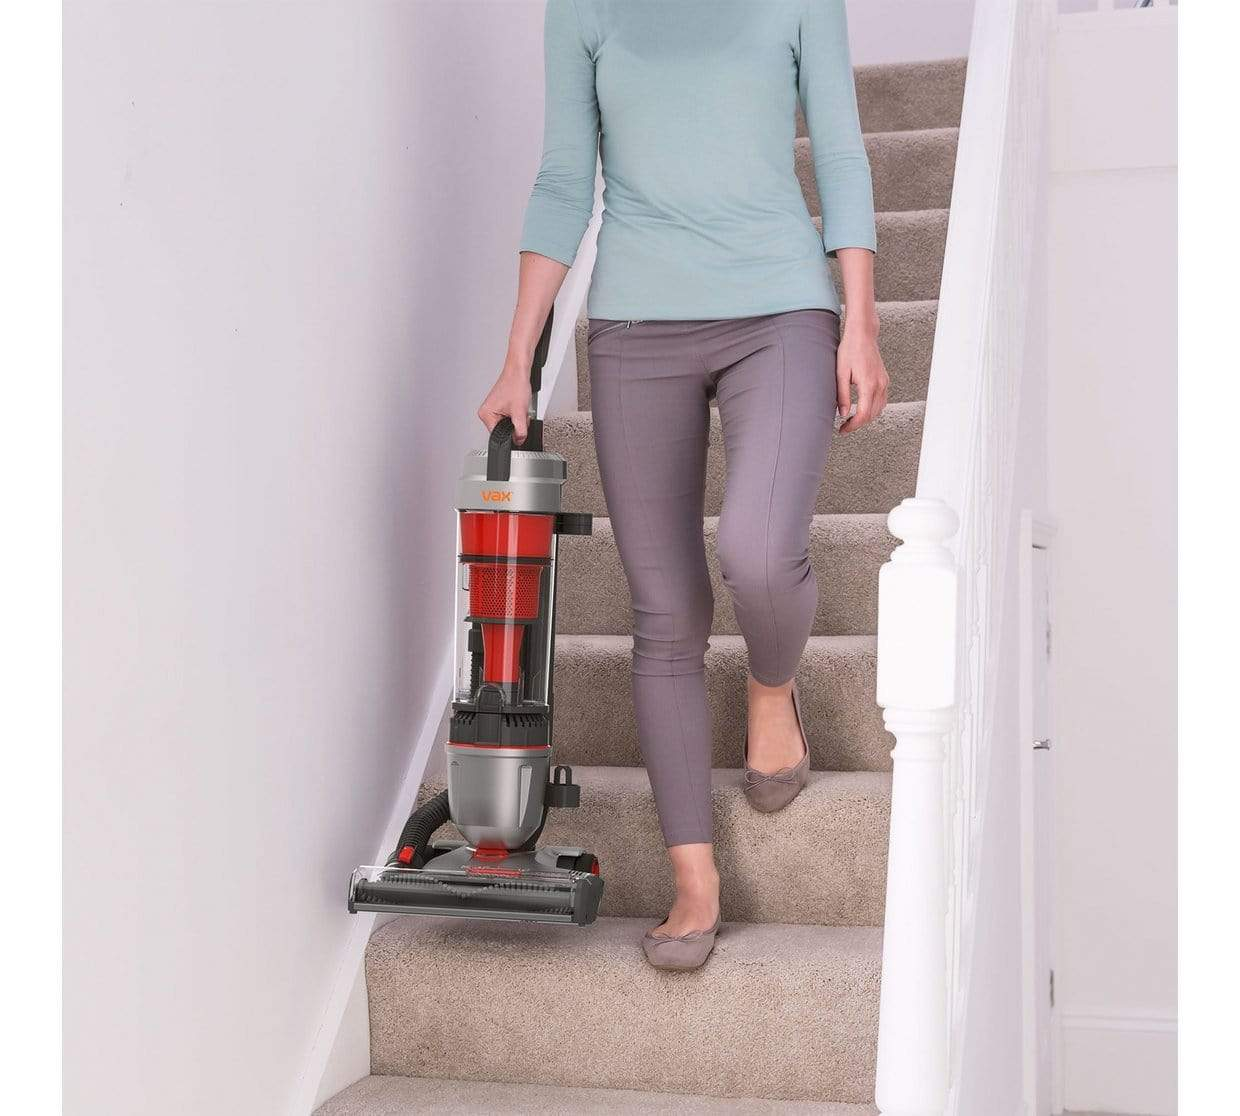 Vax UCUEGEV1 Air Stretch Pro Bagless Vacuum Cleaner - Discounted Deals UK